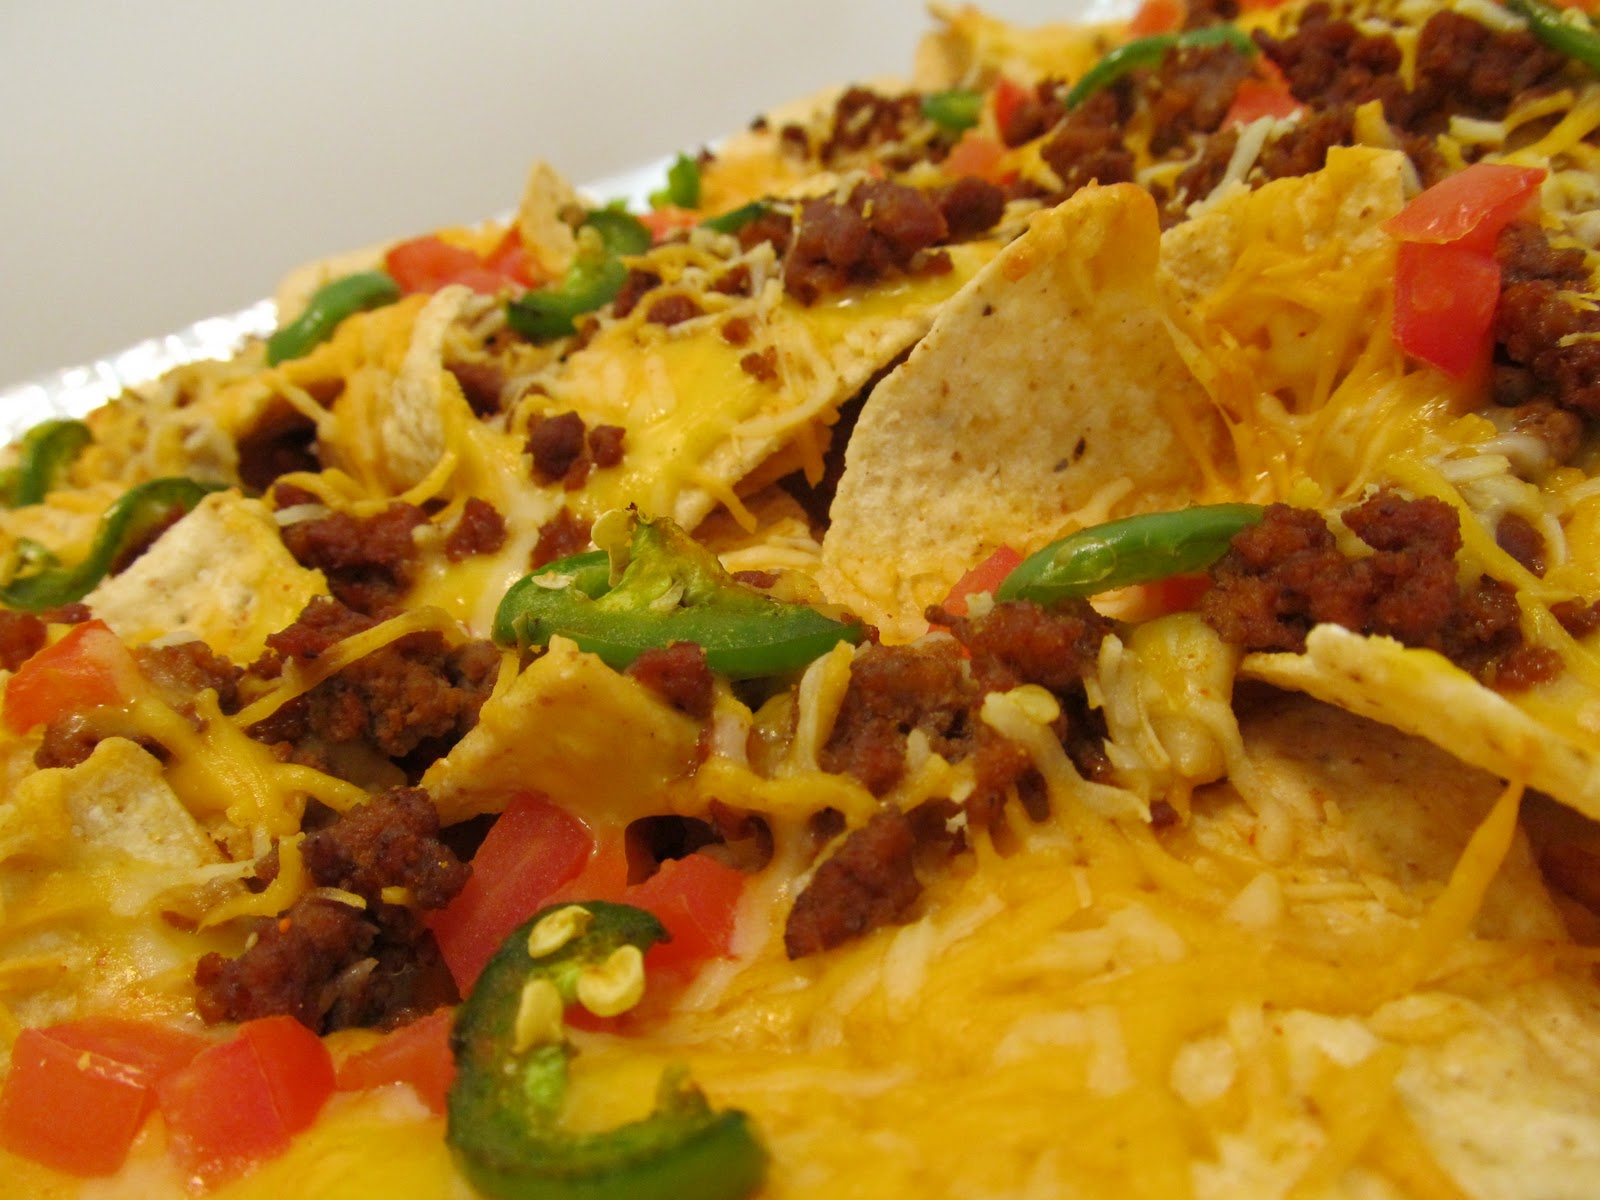 Jenn's Food Journey: Grilled Nachos